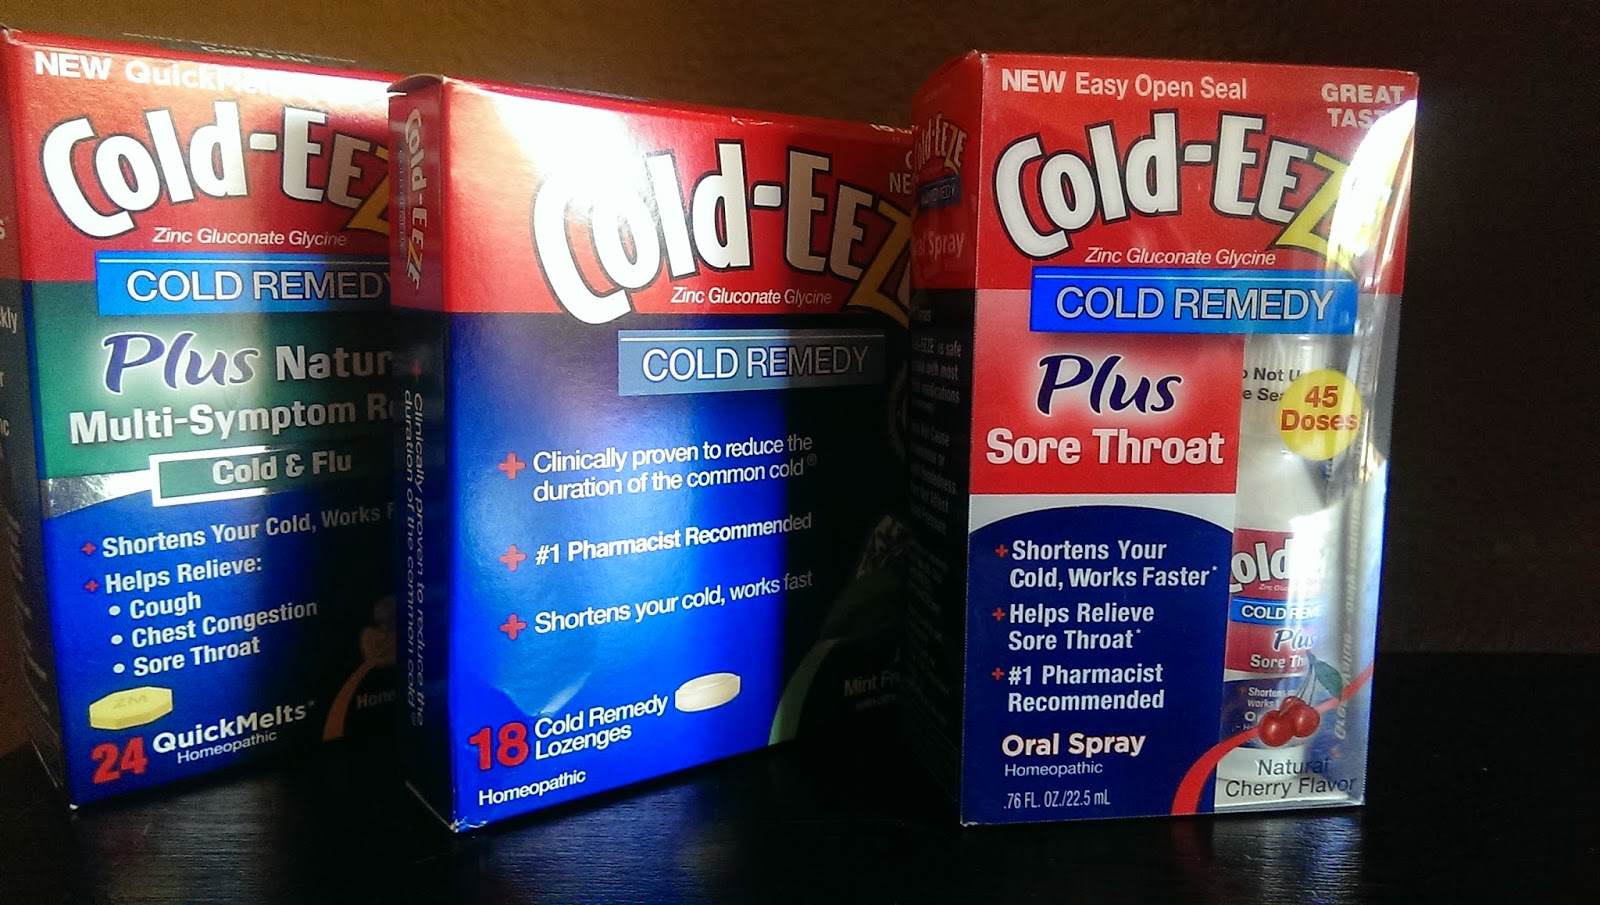 Cold%2BEEZE Relieve Cold Symptoms With Cold EEZE Cold Remedy -  Cold EEZE Review